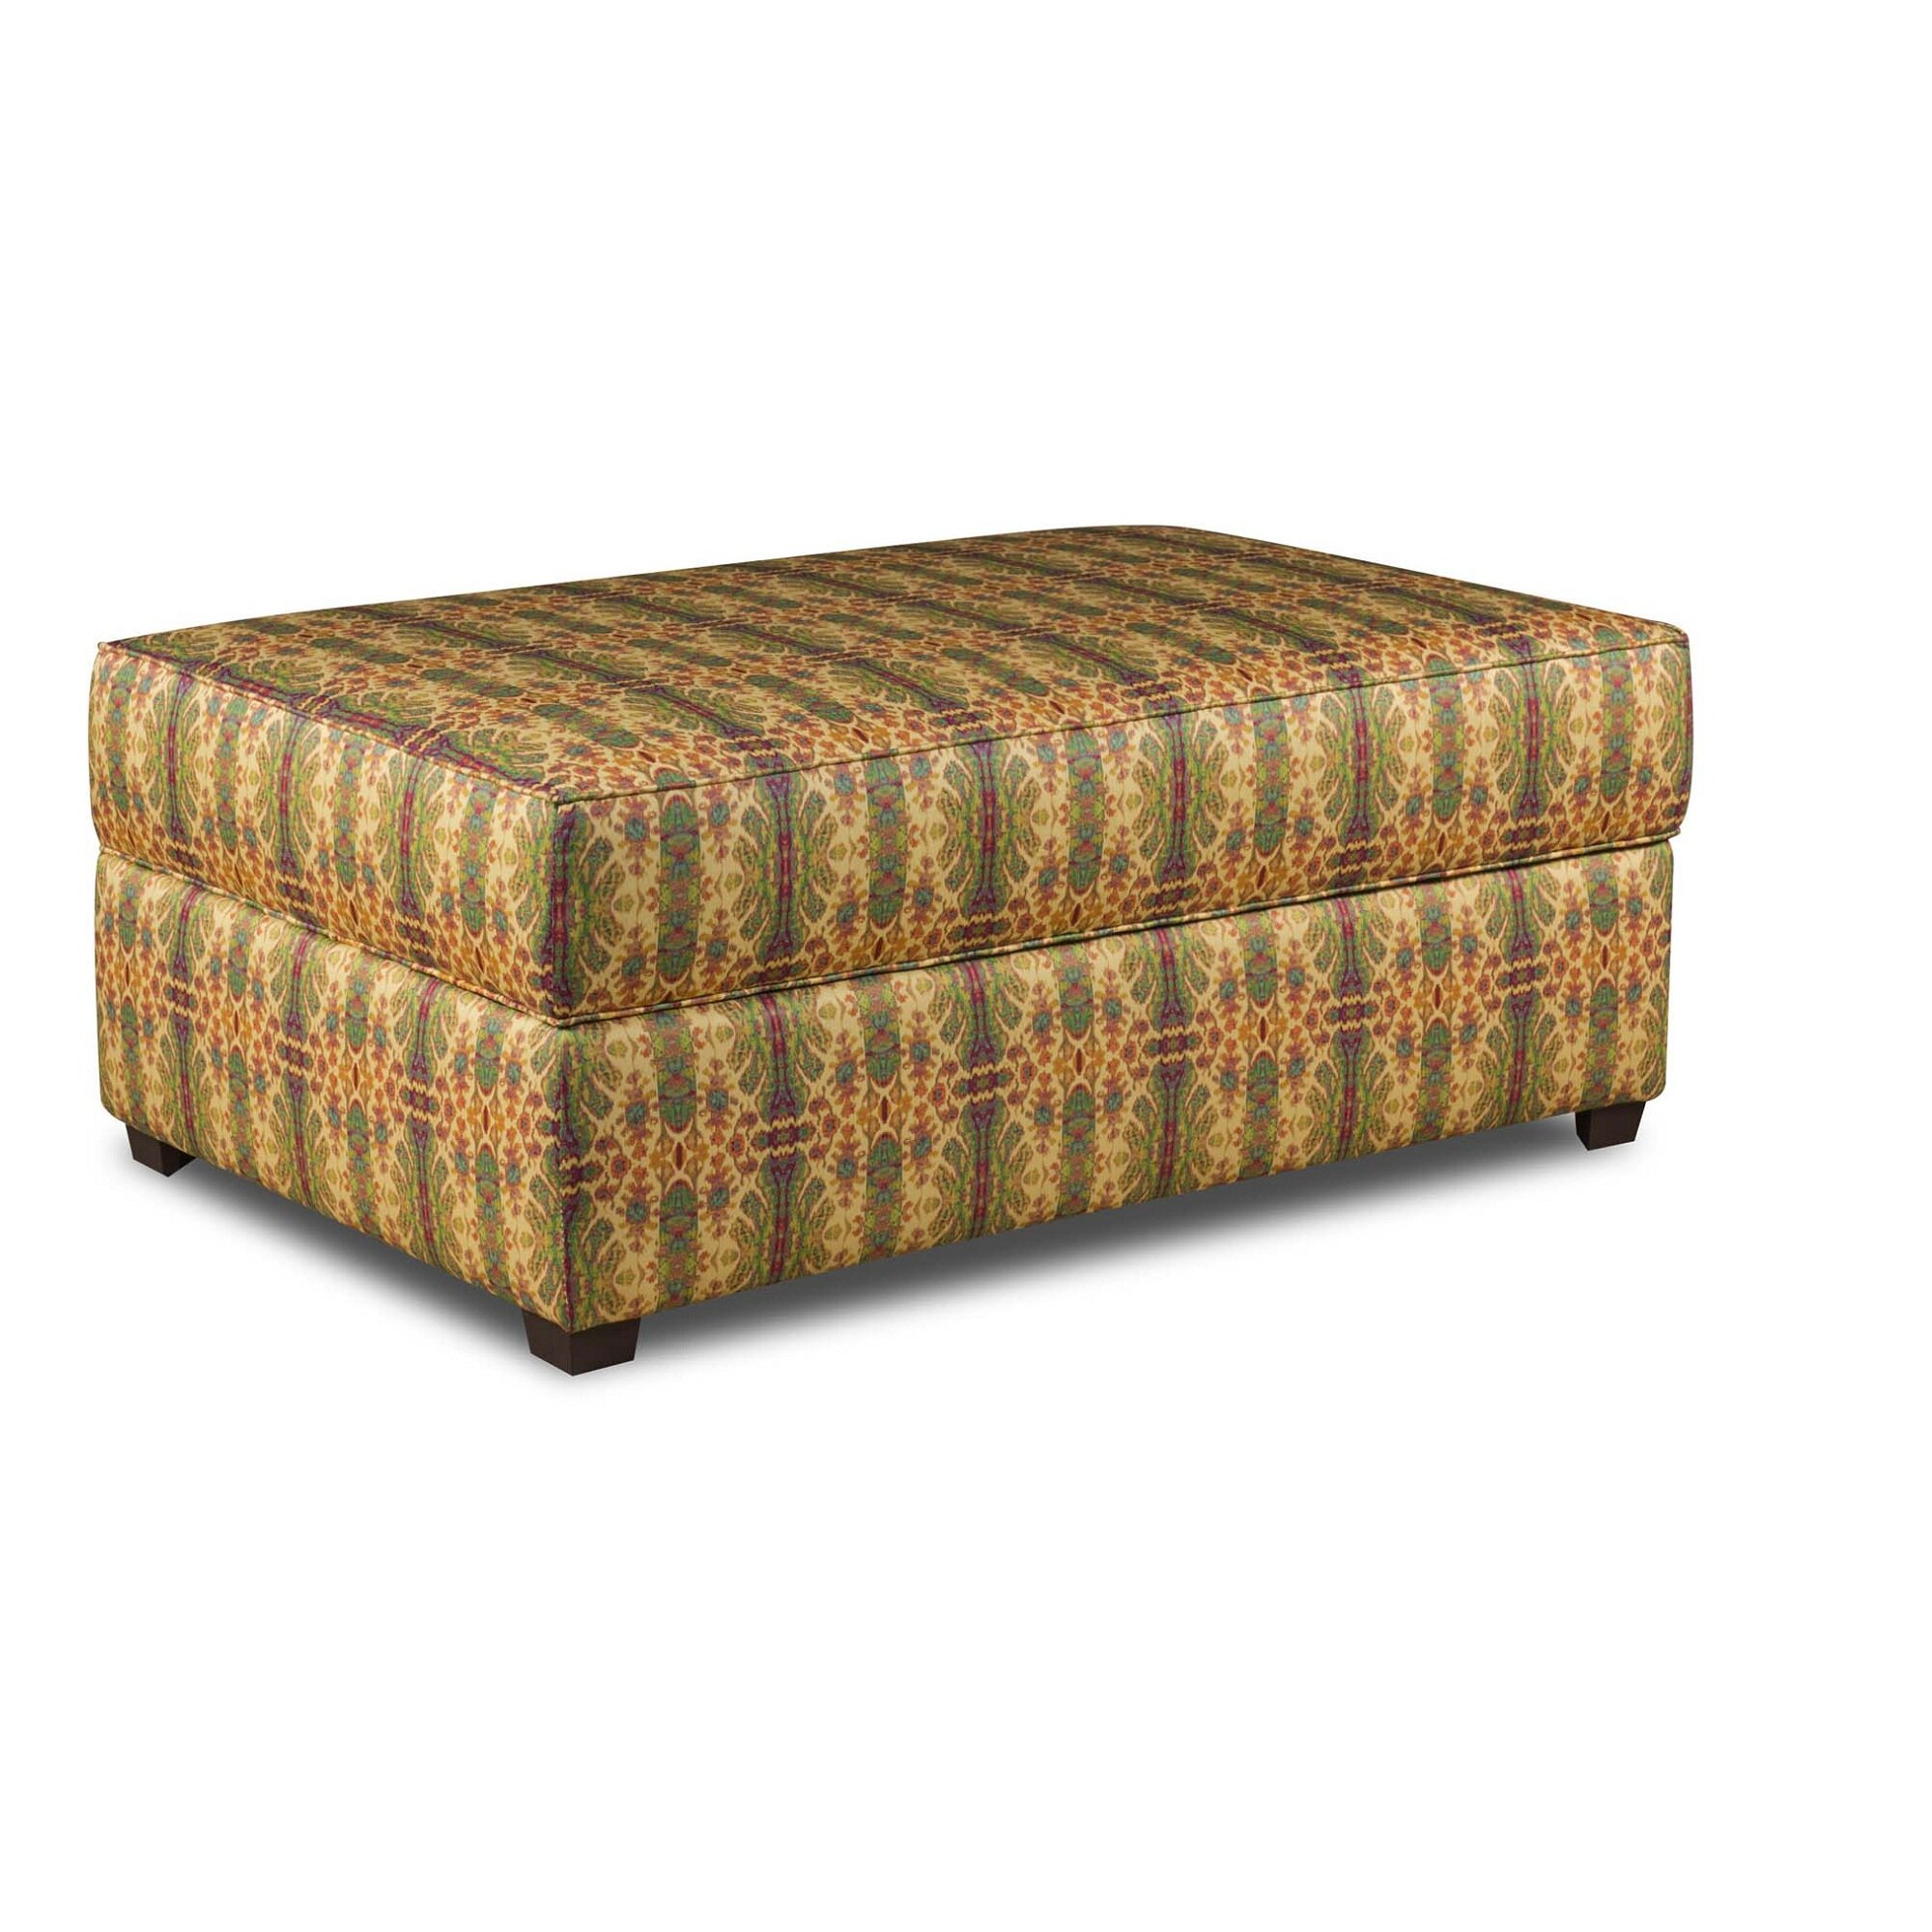 Tracy porter roberts rue cocktail ottoman wayfair for Porte ottoman